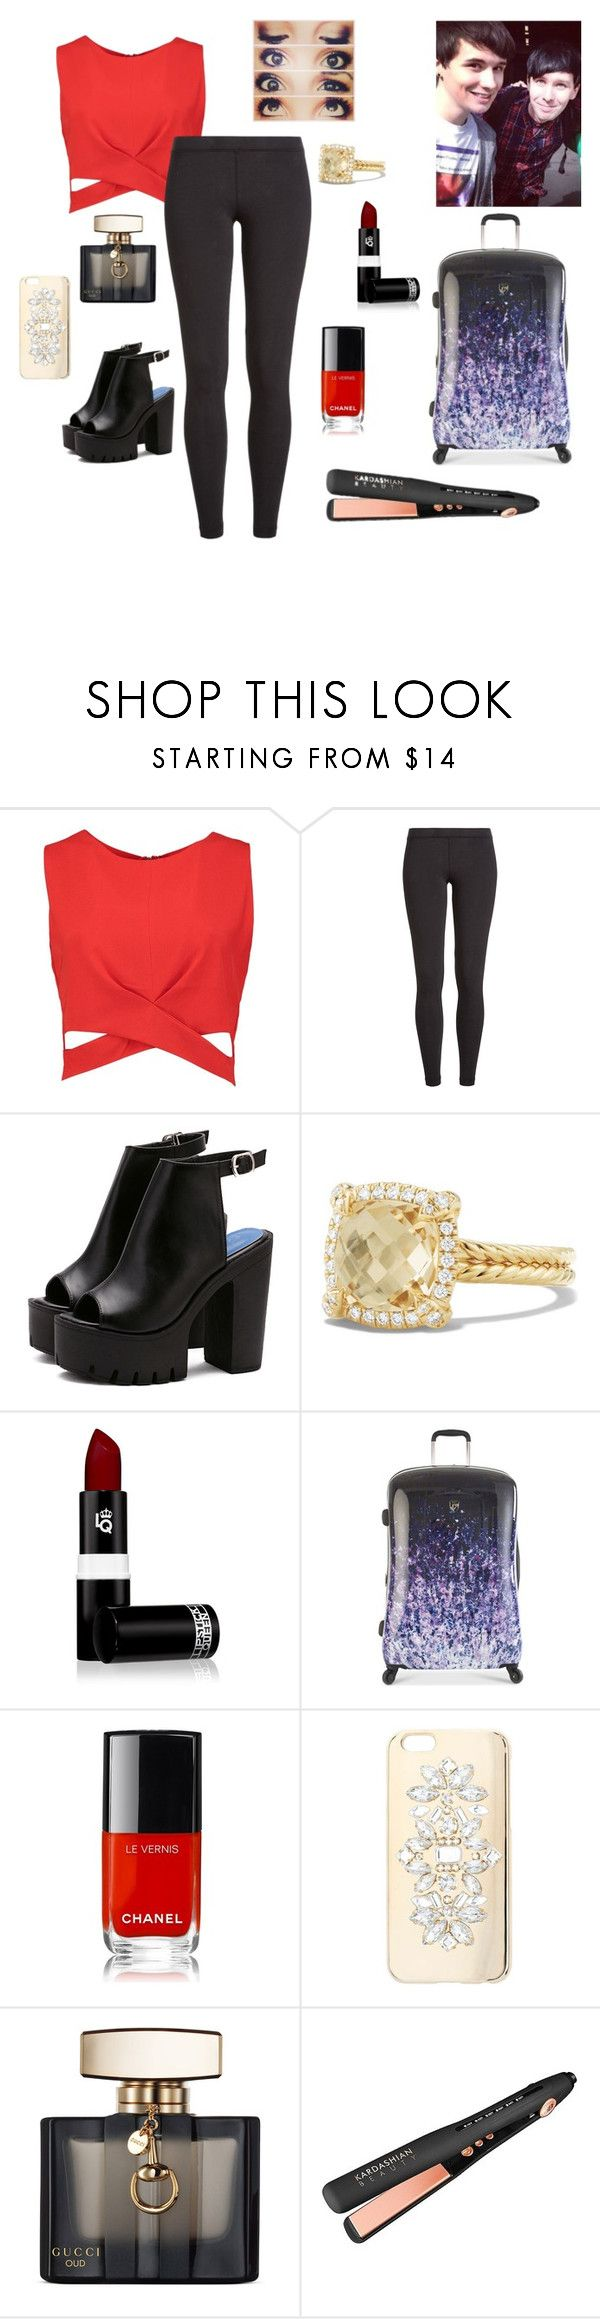 """""""Flying To London To Visit Dan & Phil and E3~The Boy With The Cat Whiskers"""" by gravityfallsgirl33 ❤ liked on Polyvore featuring Boohoo, James Perse, David Yurman, Lipstick Queen, Heys, Chanel, Miss Selfridge and Gucci"""